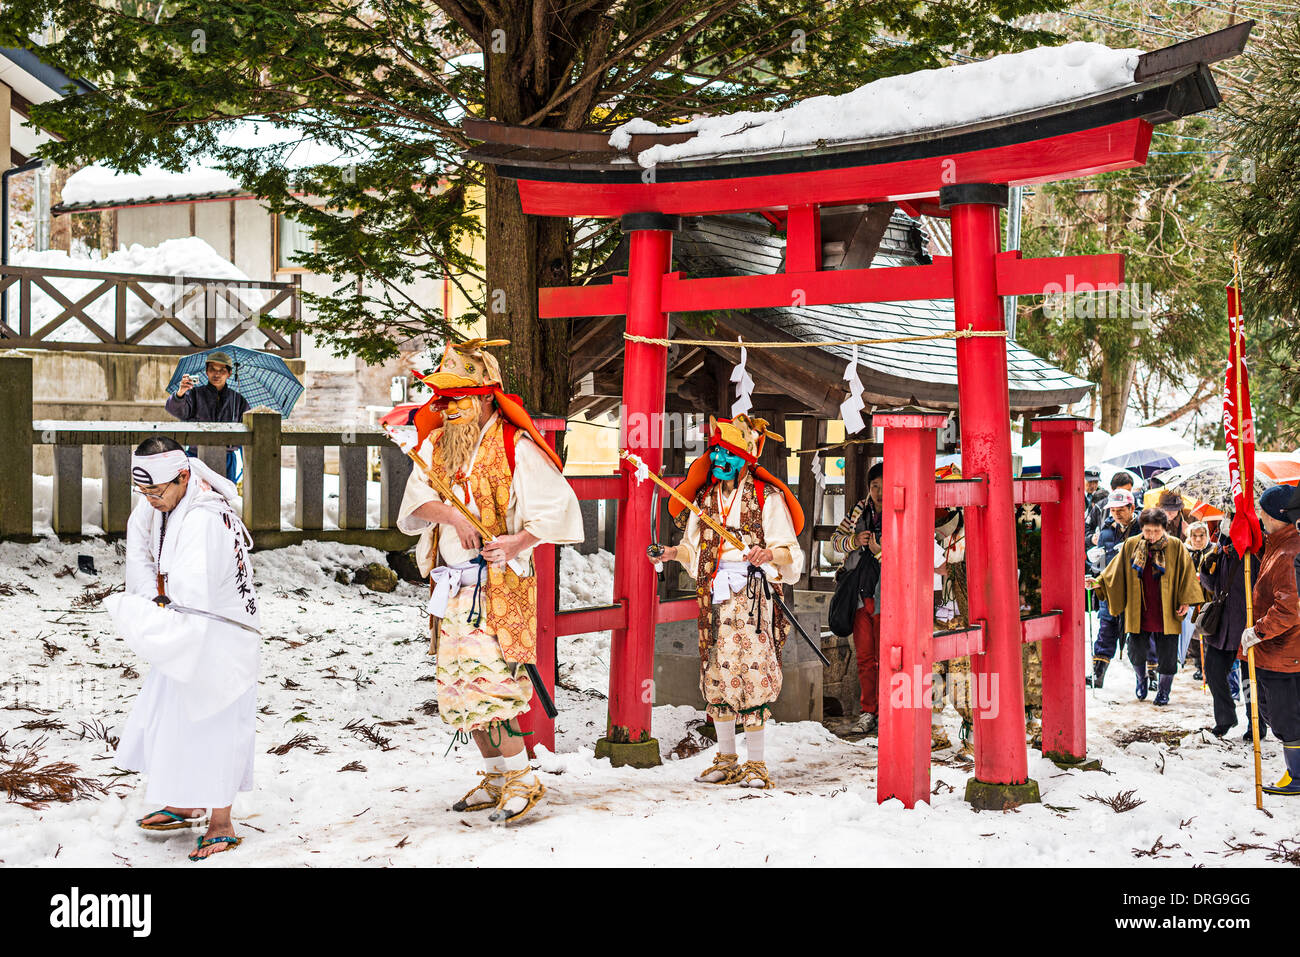 Shinto ascetics lead a procession in Nagano, Japan. - Stock Image